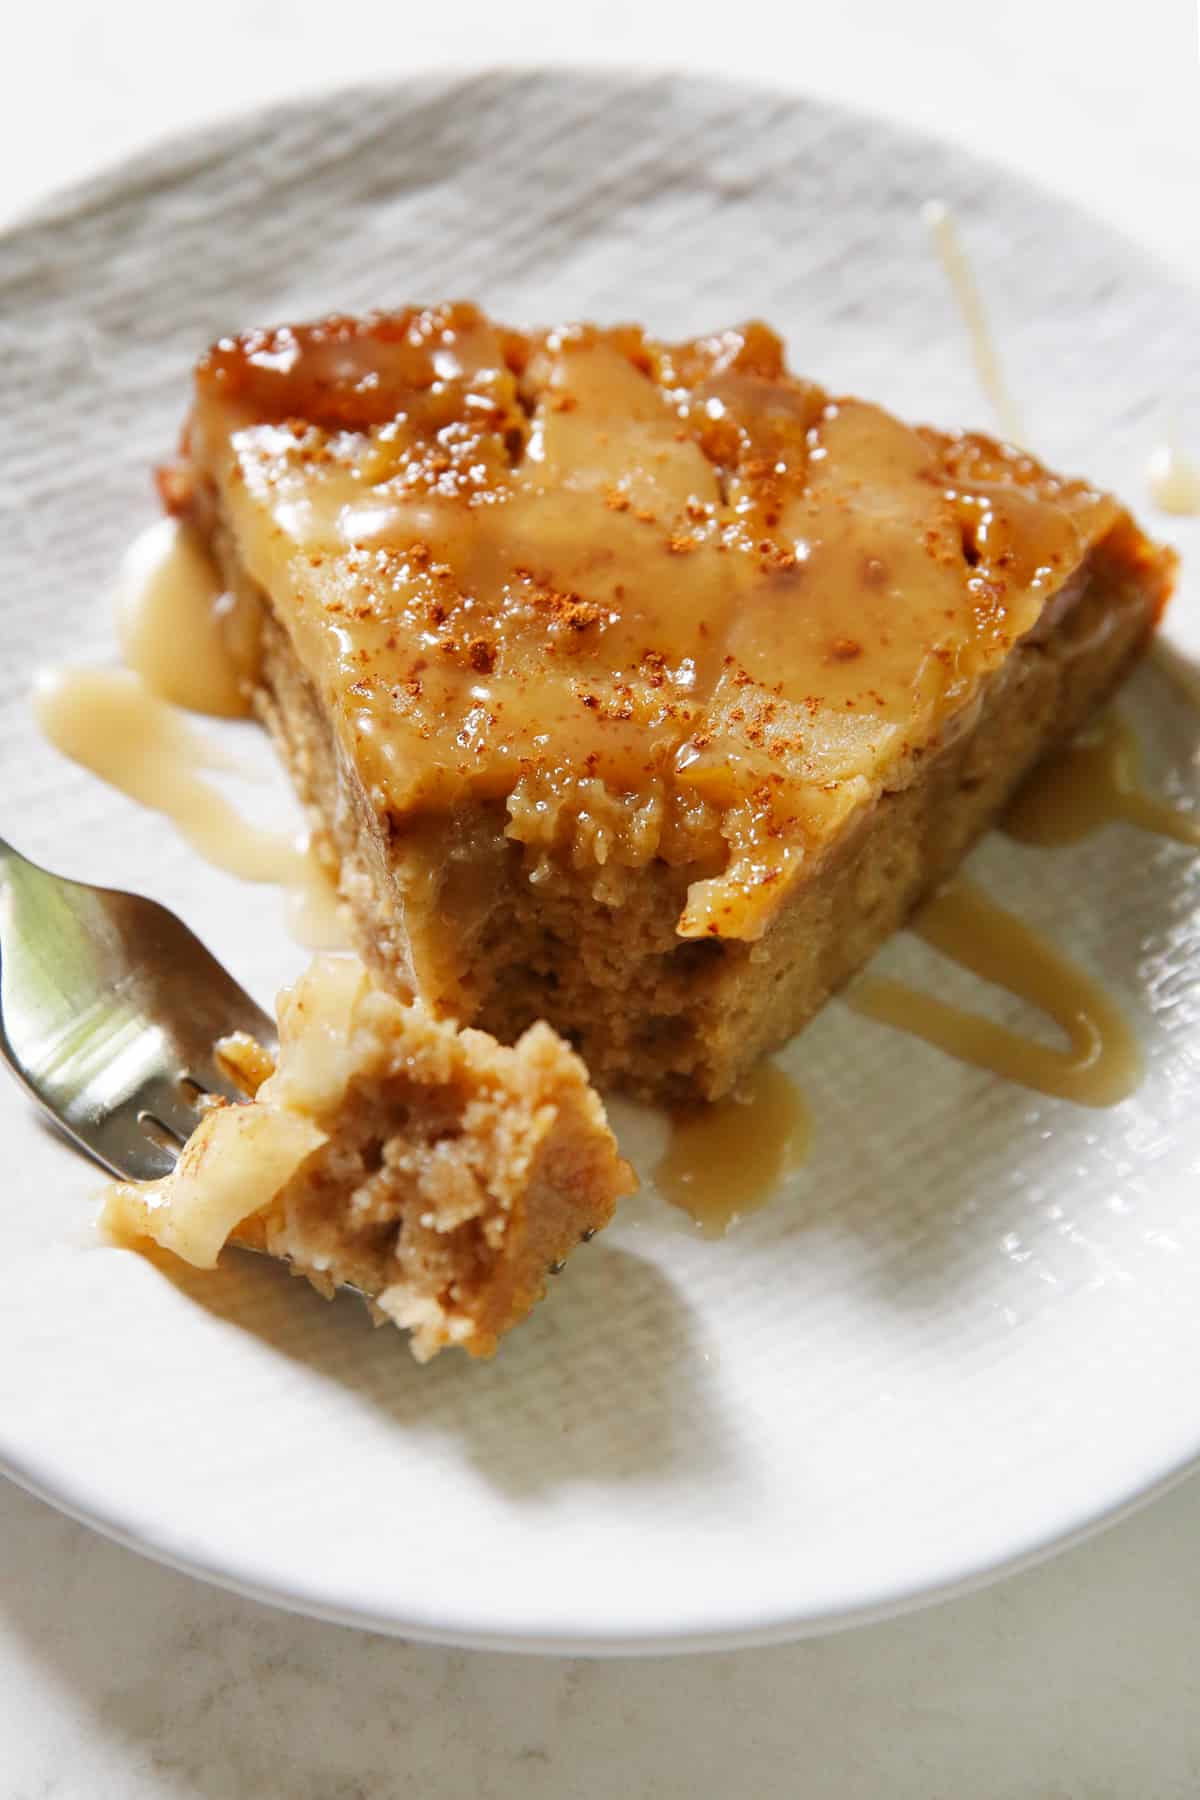 Slice of gluten free apple cake on a plate